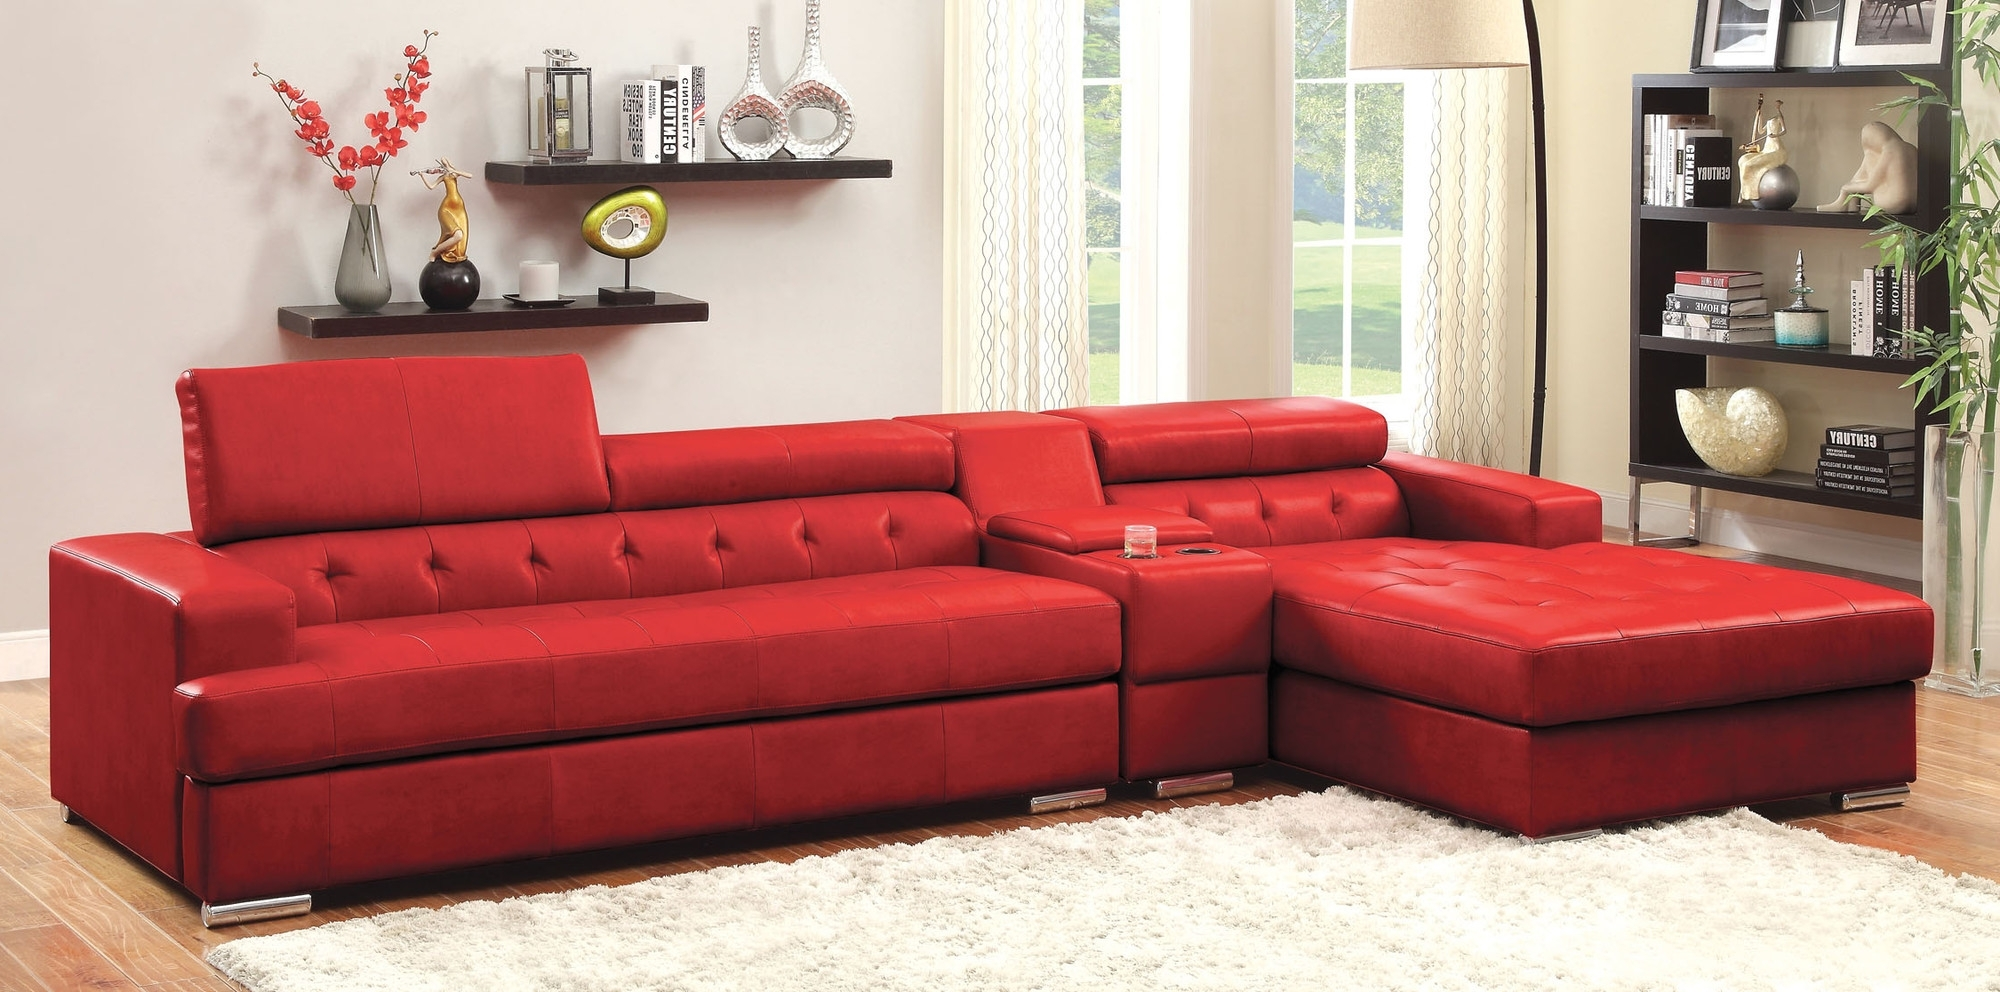 Well Known Red Sleeper Sofas Throughout Fascinating L Shaped Red Vinyl Modern Sleeper Sofa Stainless Steel (View 20 of 20)